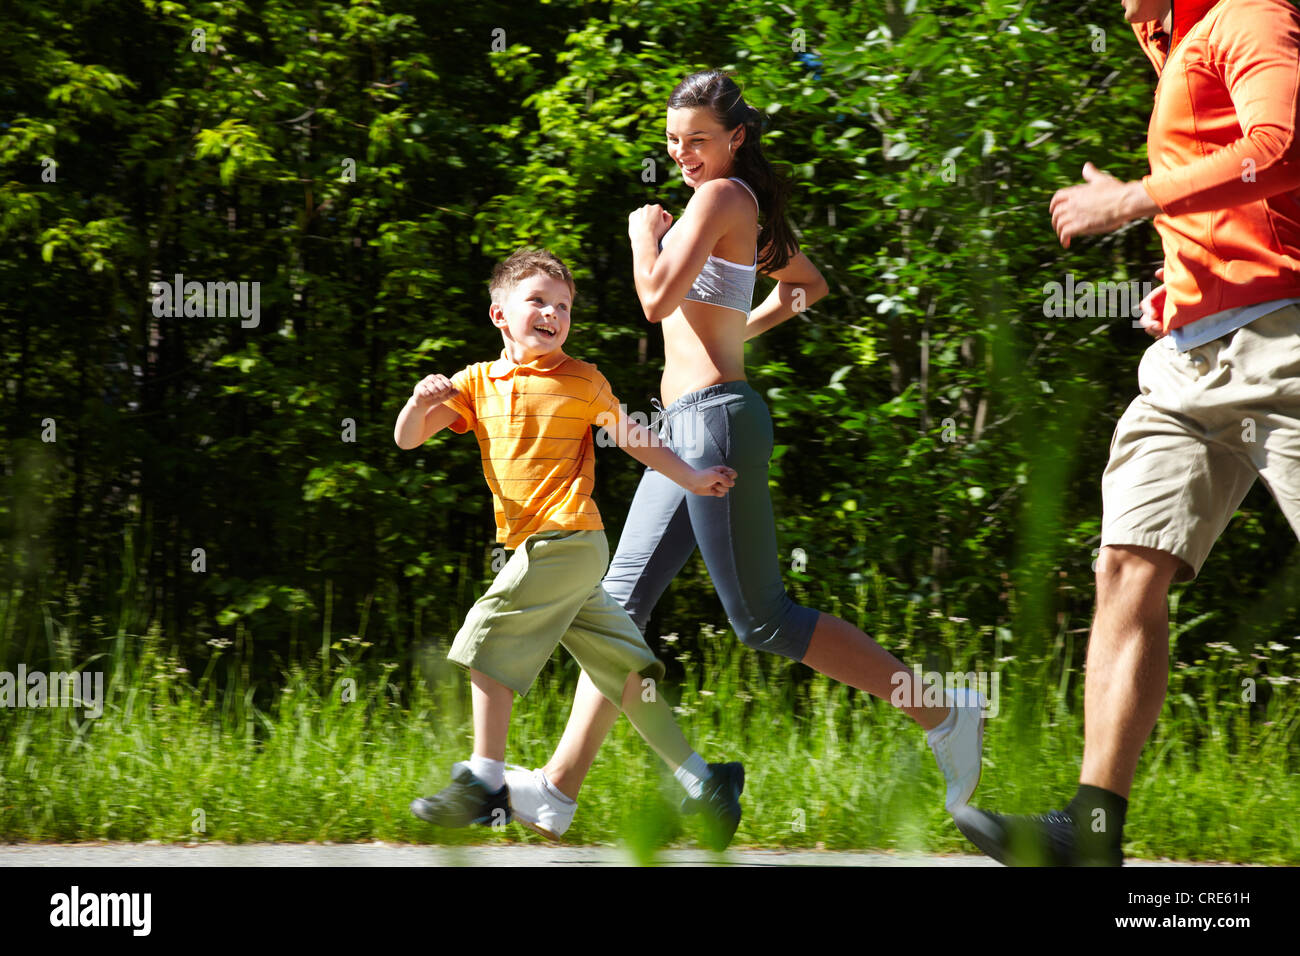 """Happy running family proving the well-known saying """"Life is motion"""" - Stock Image"""